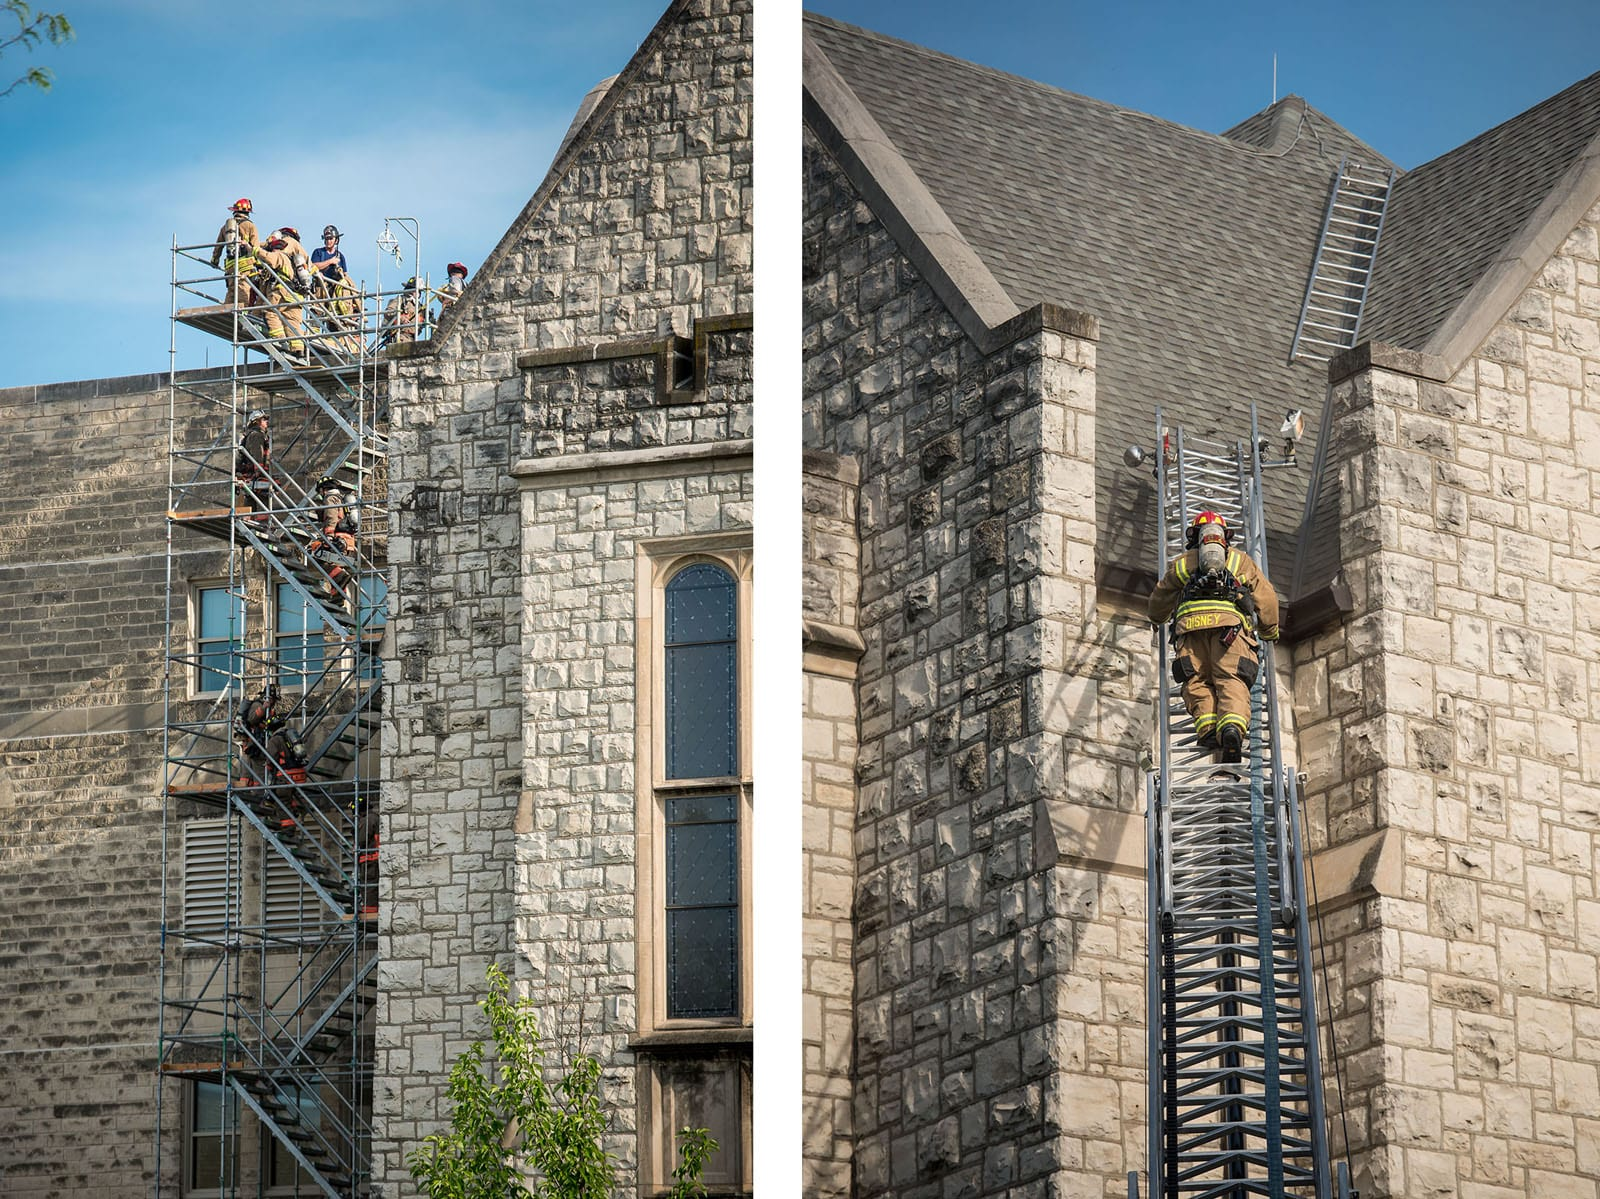 Two side-by-side photos show firefighters climbing to the roof to fight the fire.